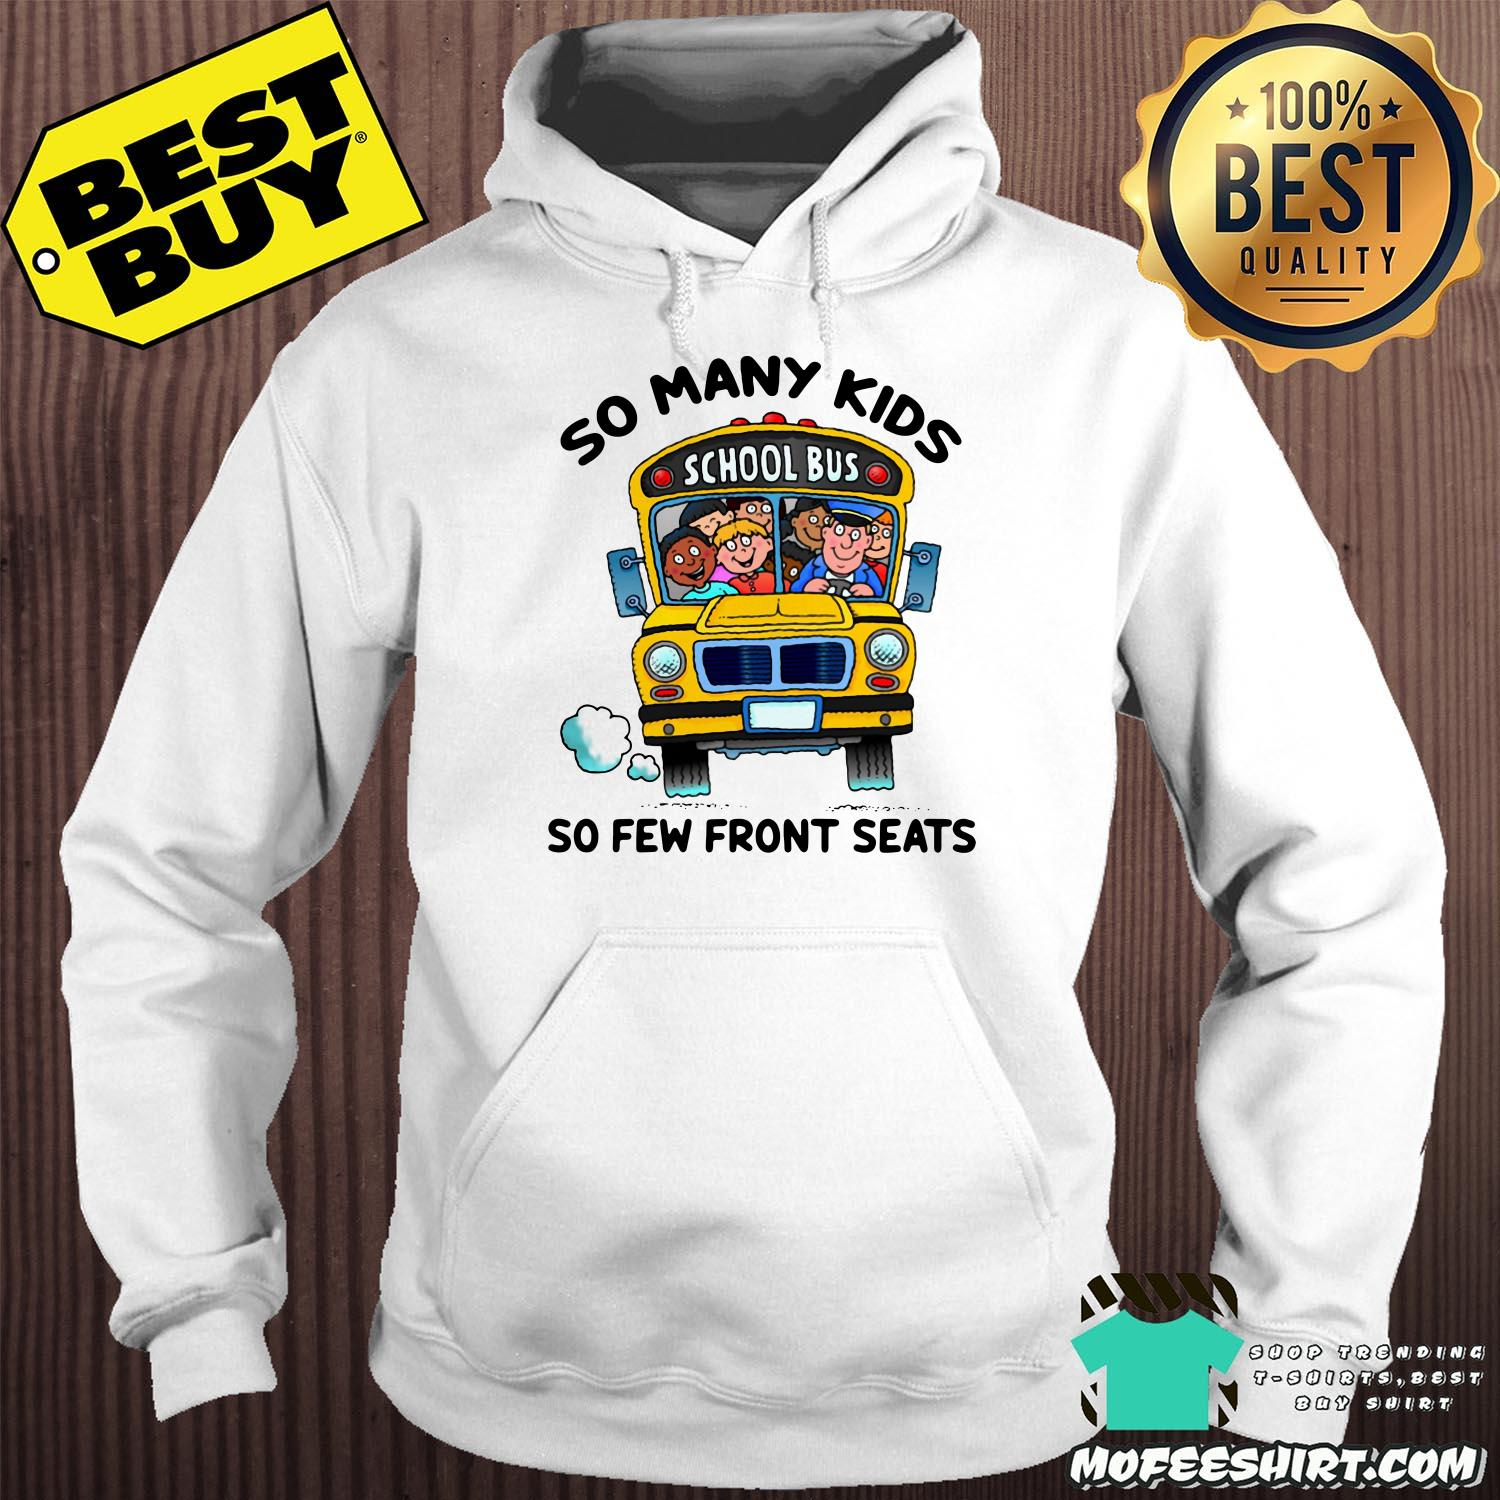 so many kids school bus so few front seats hoodie - So Many Kids School Bus So Few Front Seats shirt